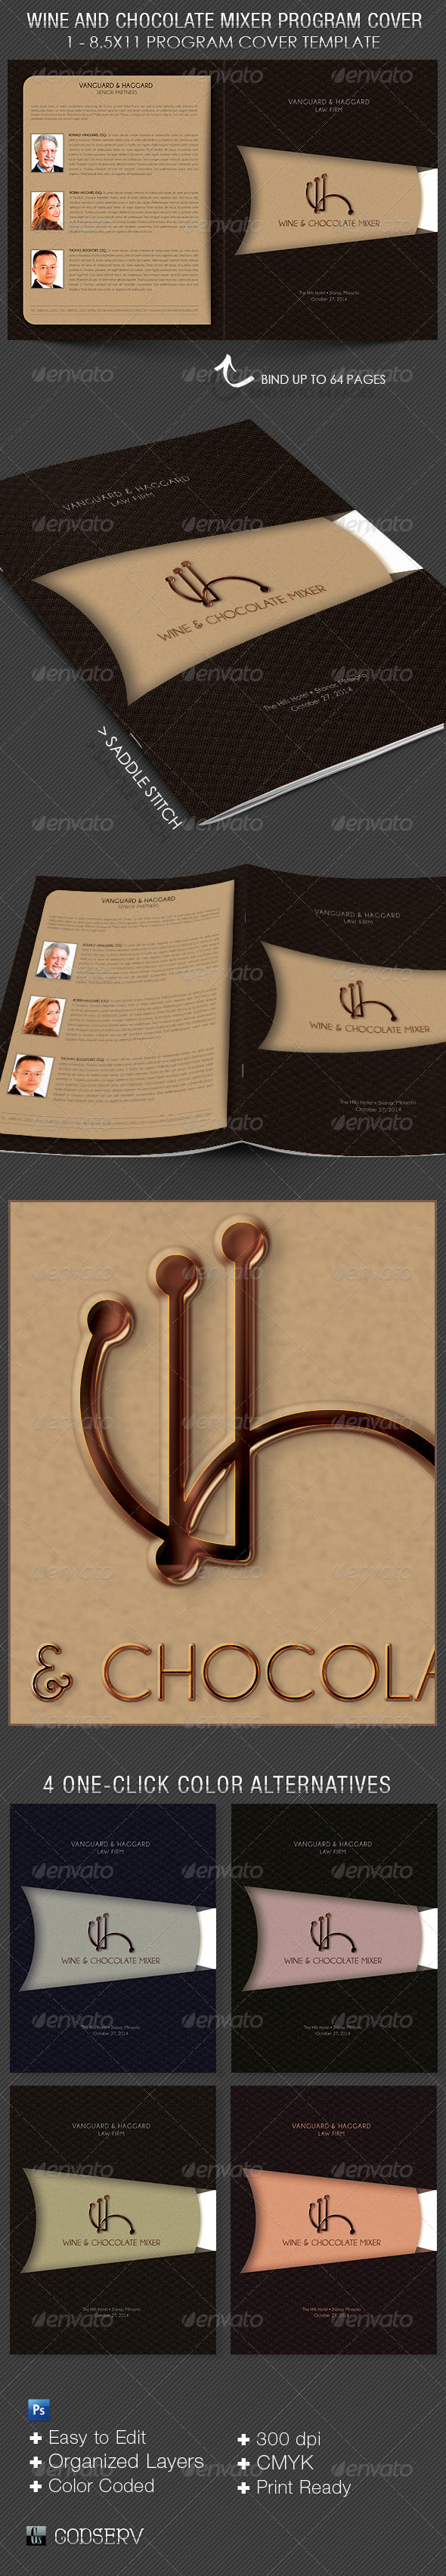 GraphicRiver Wine and Chocolate Mixer Program Cover Template 5965592